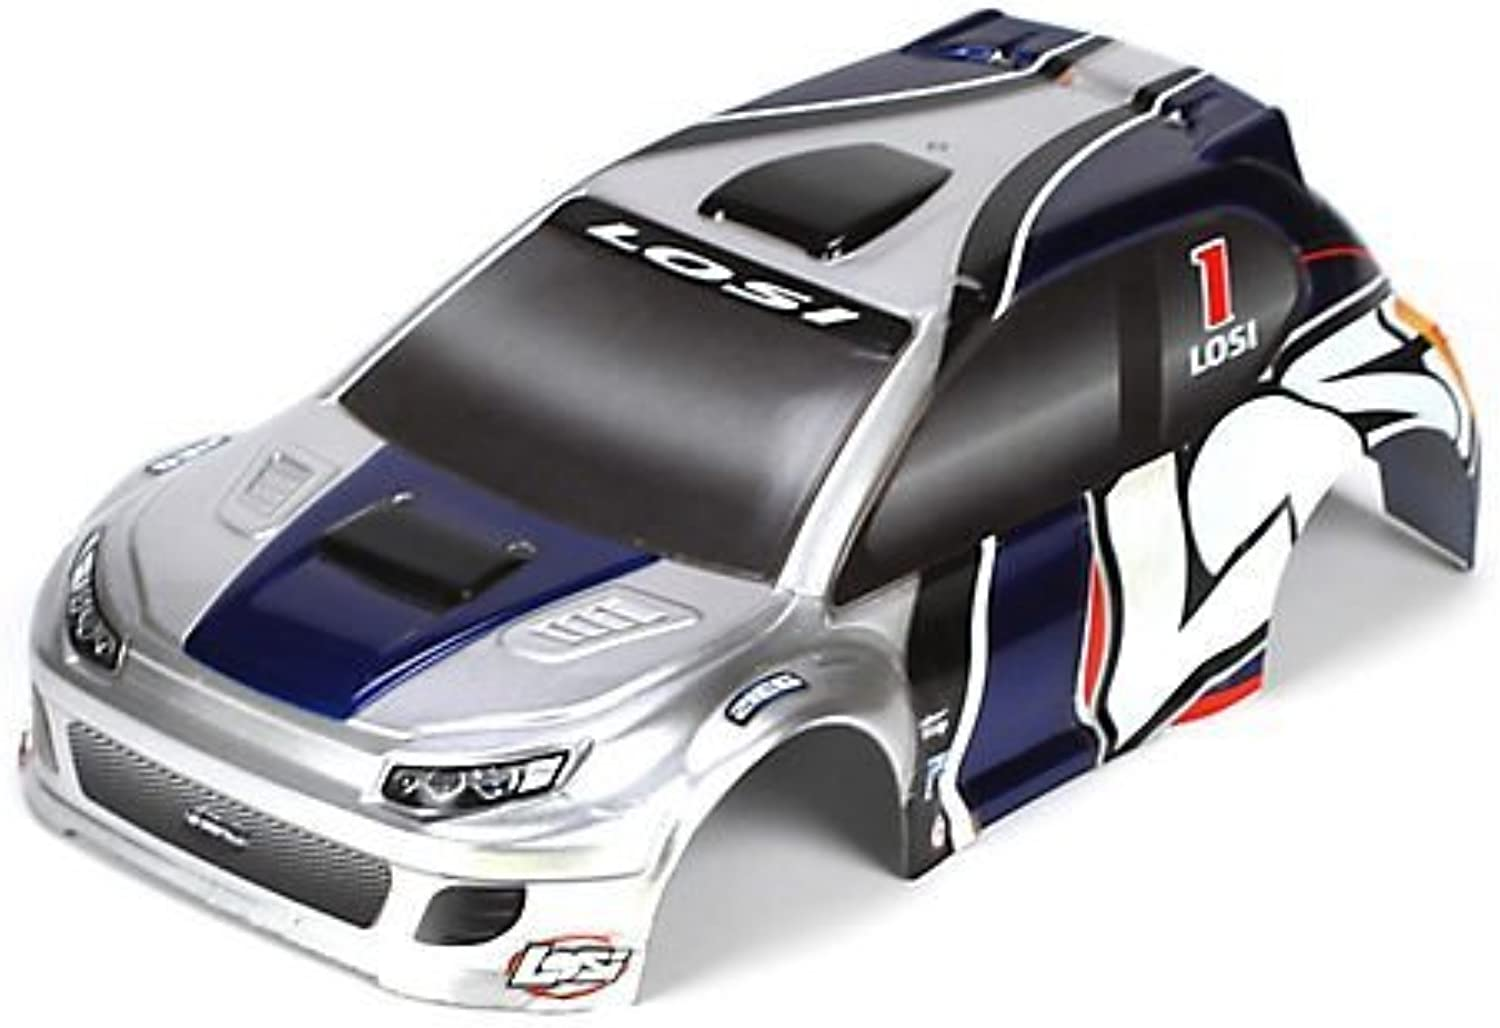 1 24 4WD Rally Painted Body, Silber Blau by Team Losi